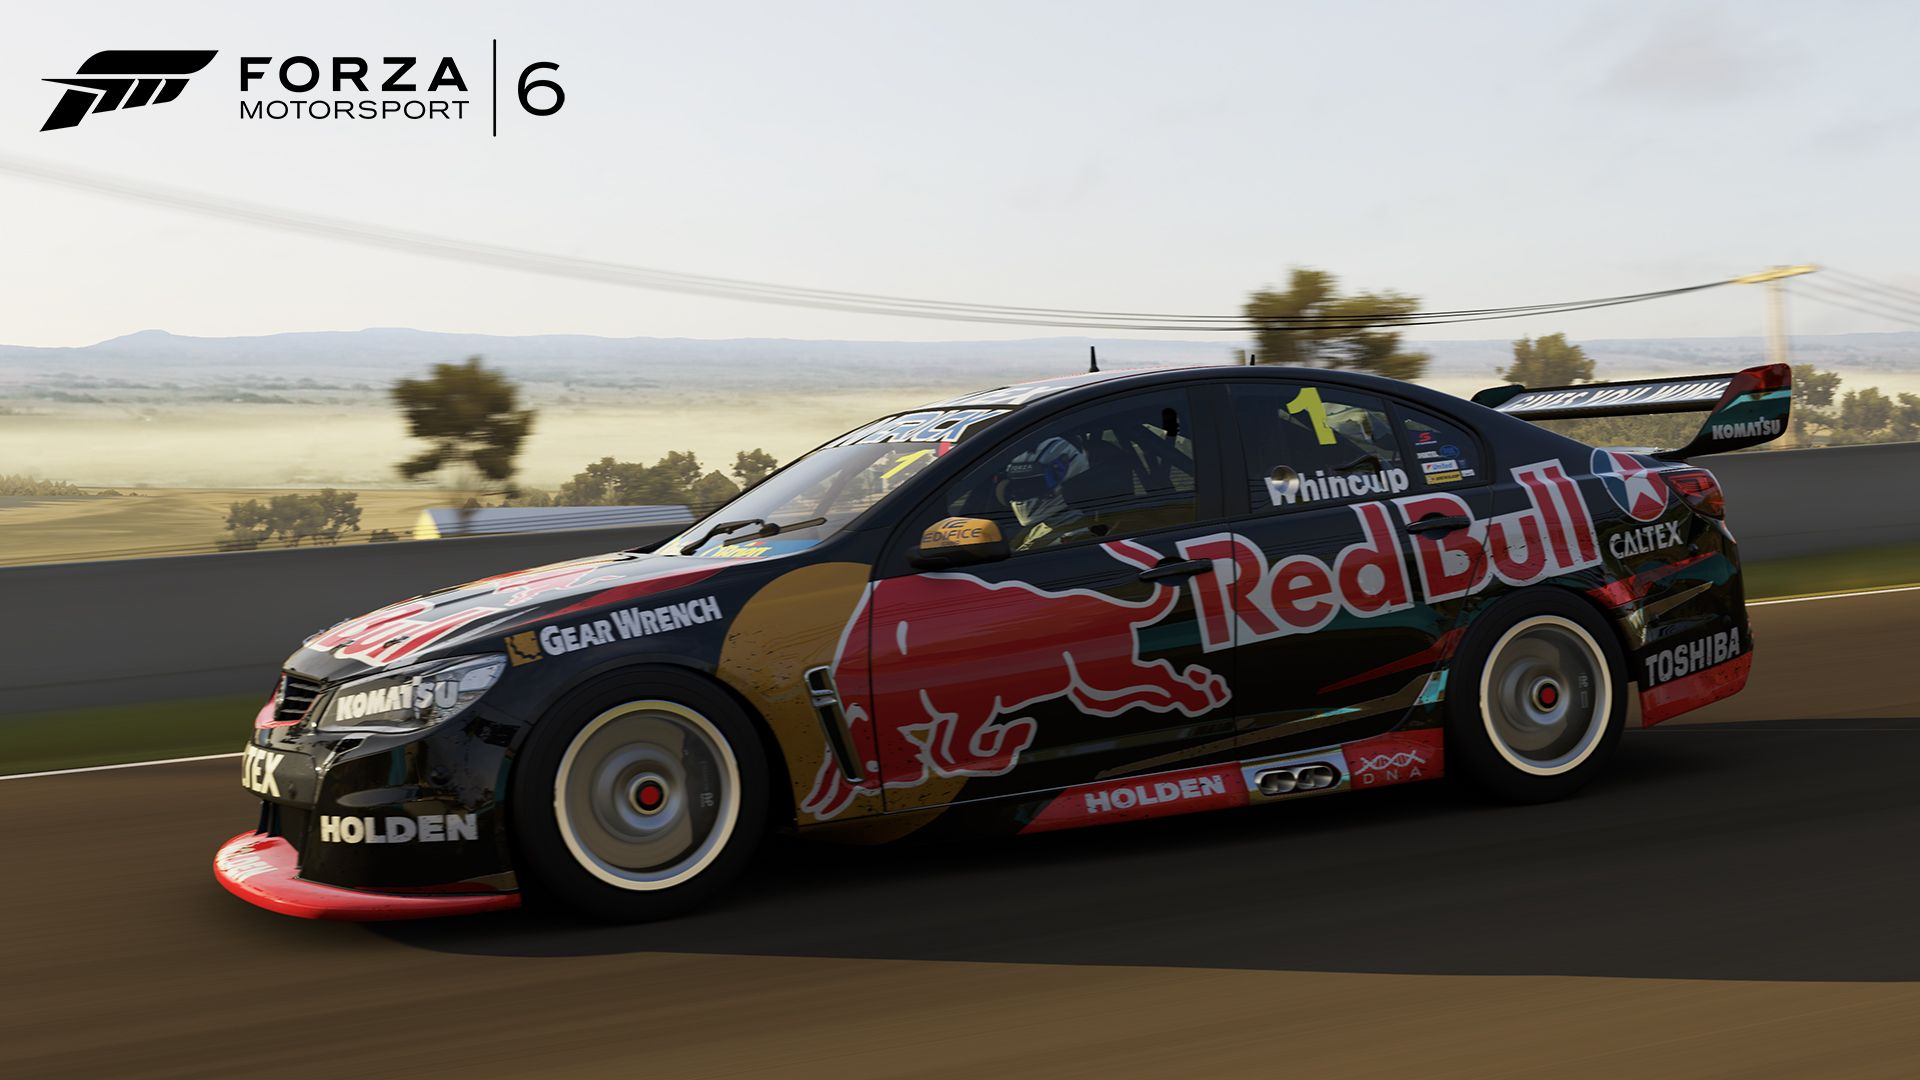 Race Down Under With V8 Supercars Australia In The Forza Motorsport 6 Garage Forza Motorsport 6 Forza Motorsport Super Cars